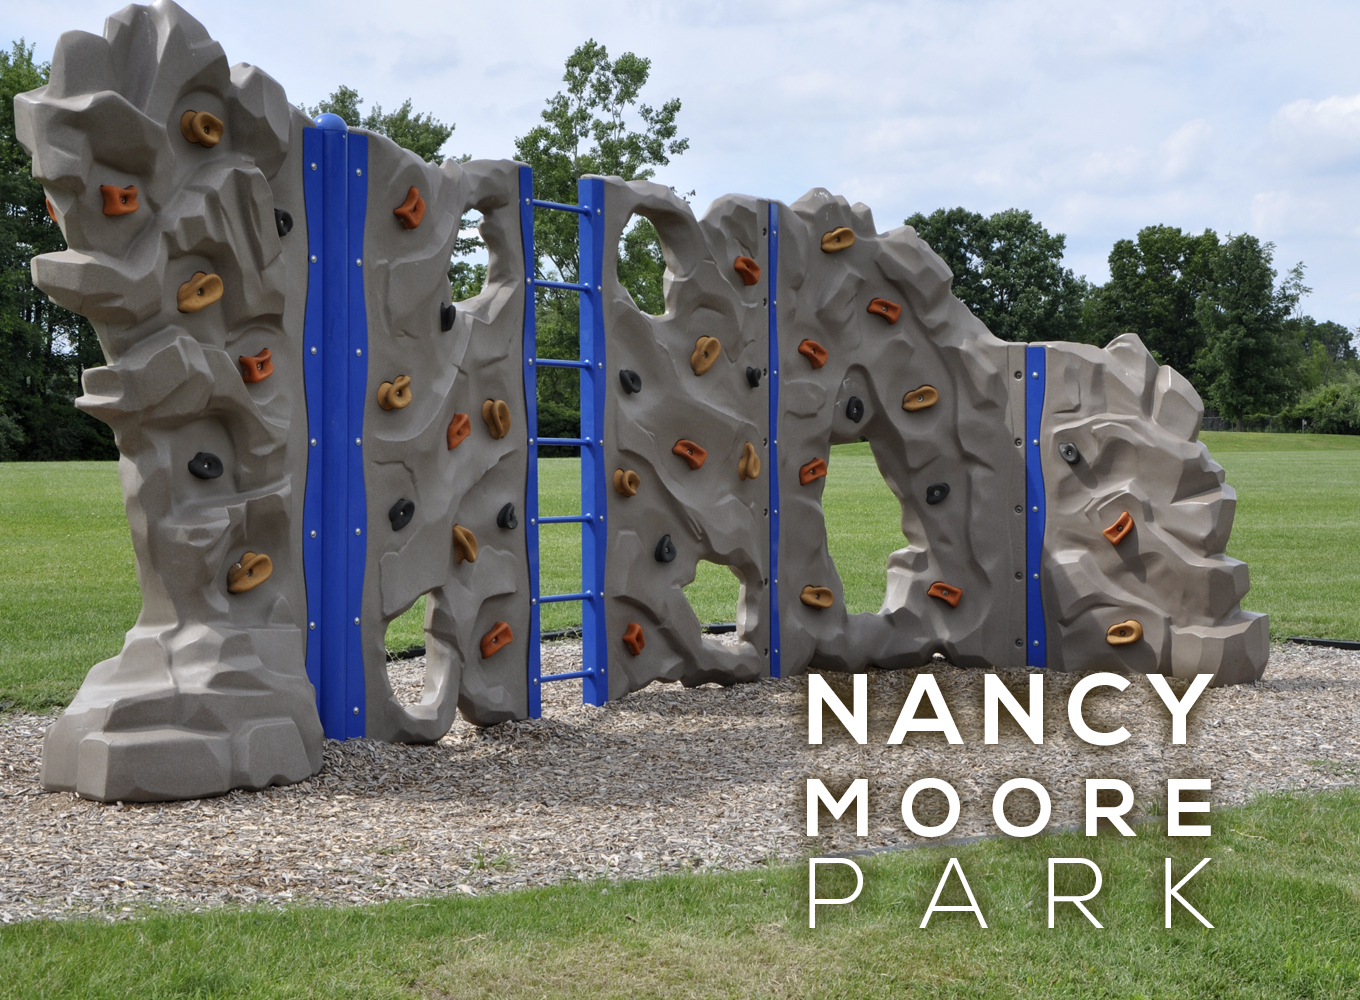 Nancy Moore Park